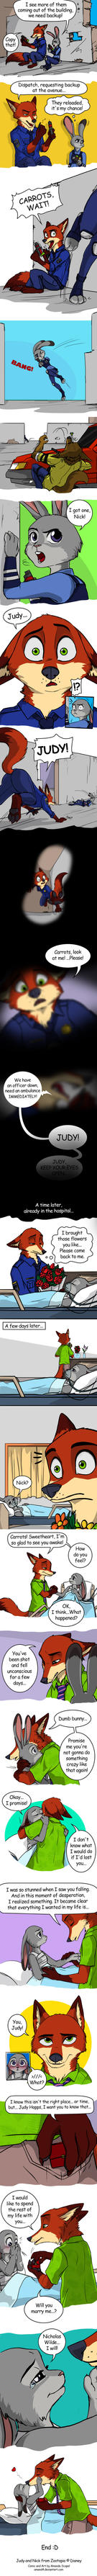 Nick and Judy - part IV - Zootopia by Amand4